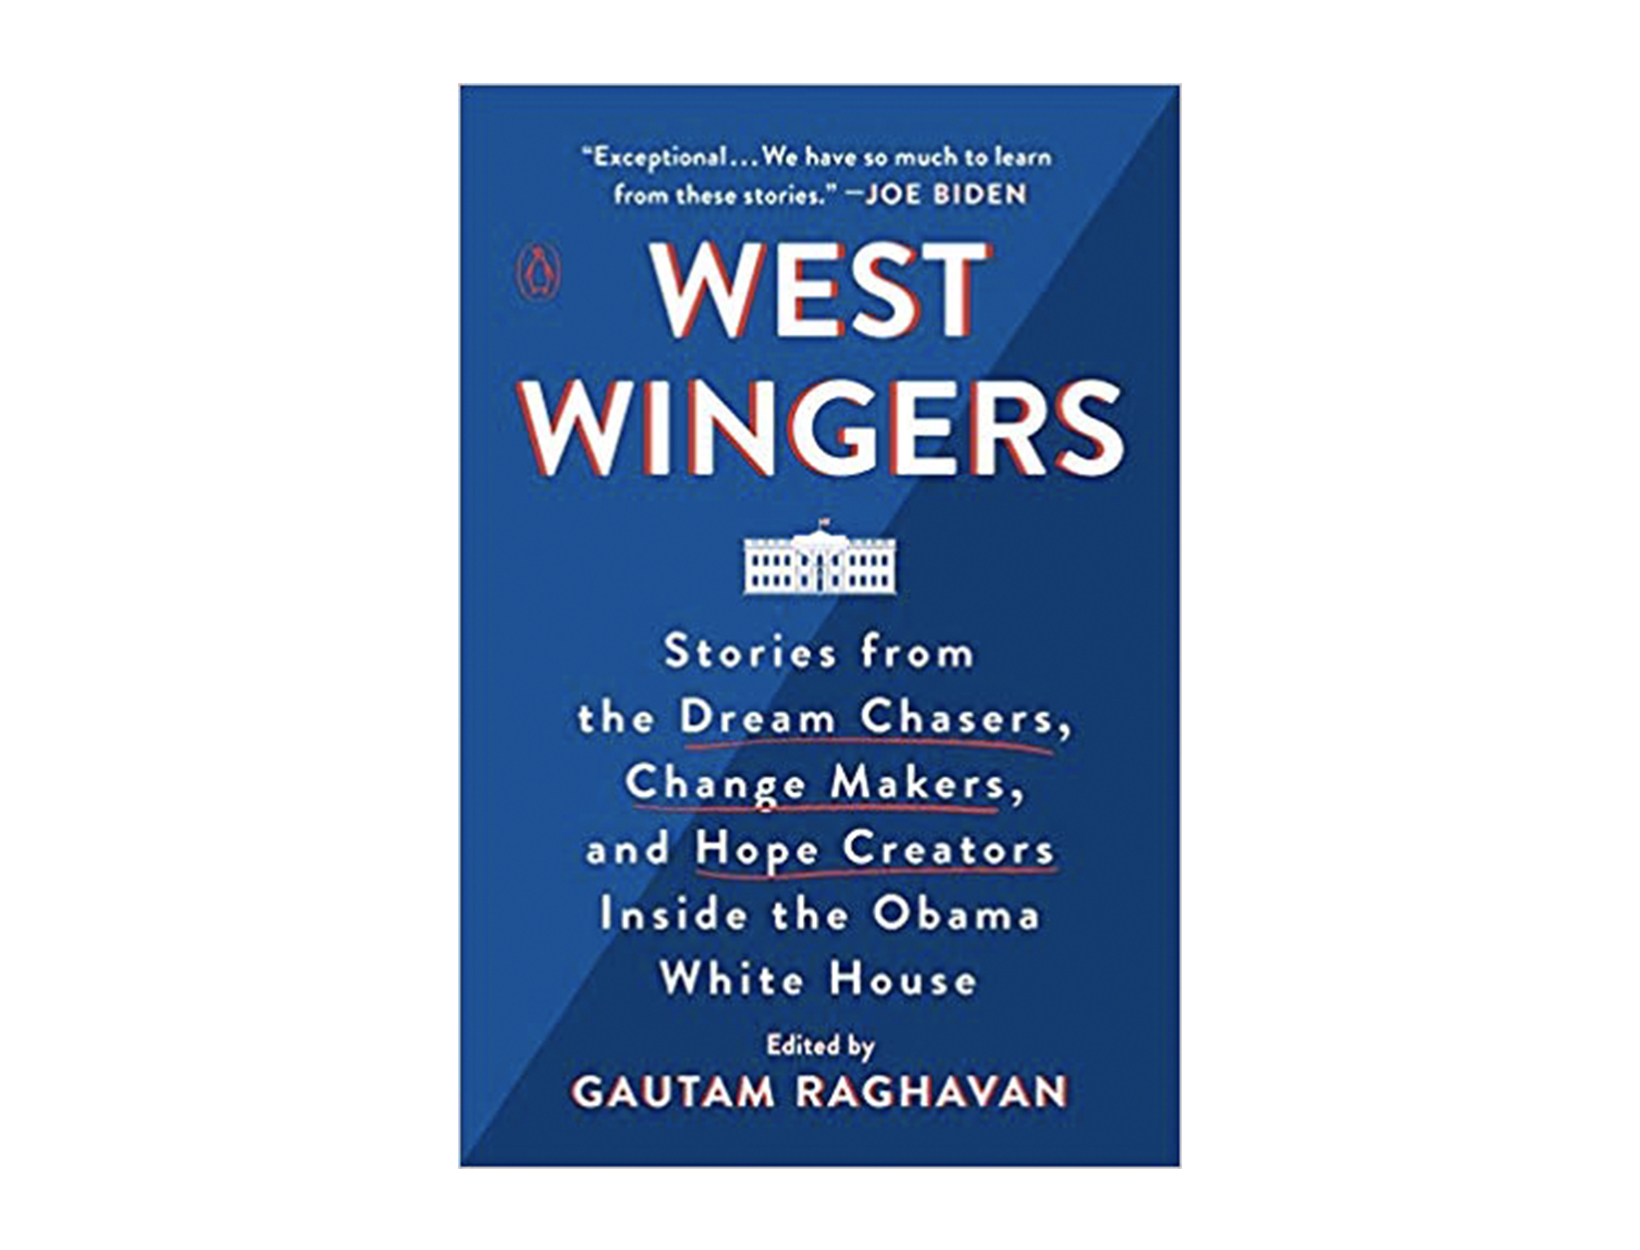 <em>West Wingers</em> edited by Gautam Raghavan